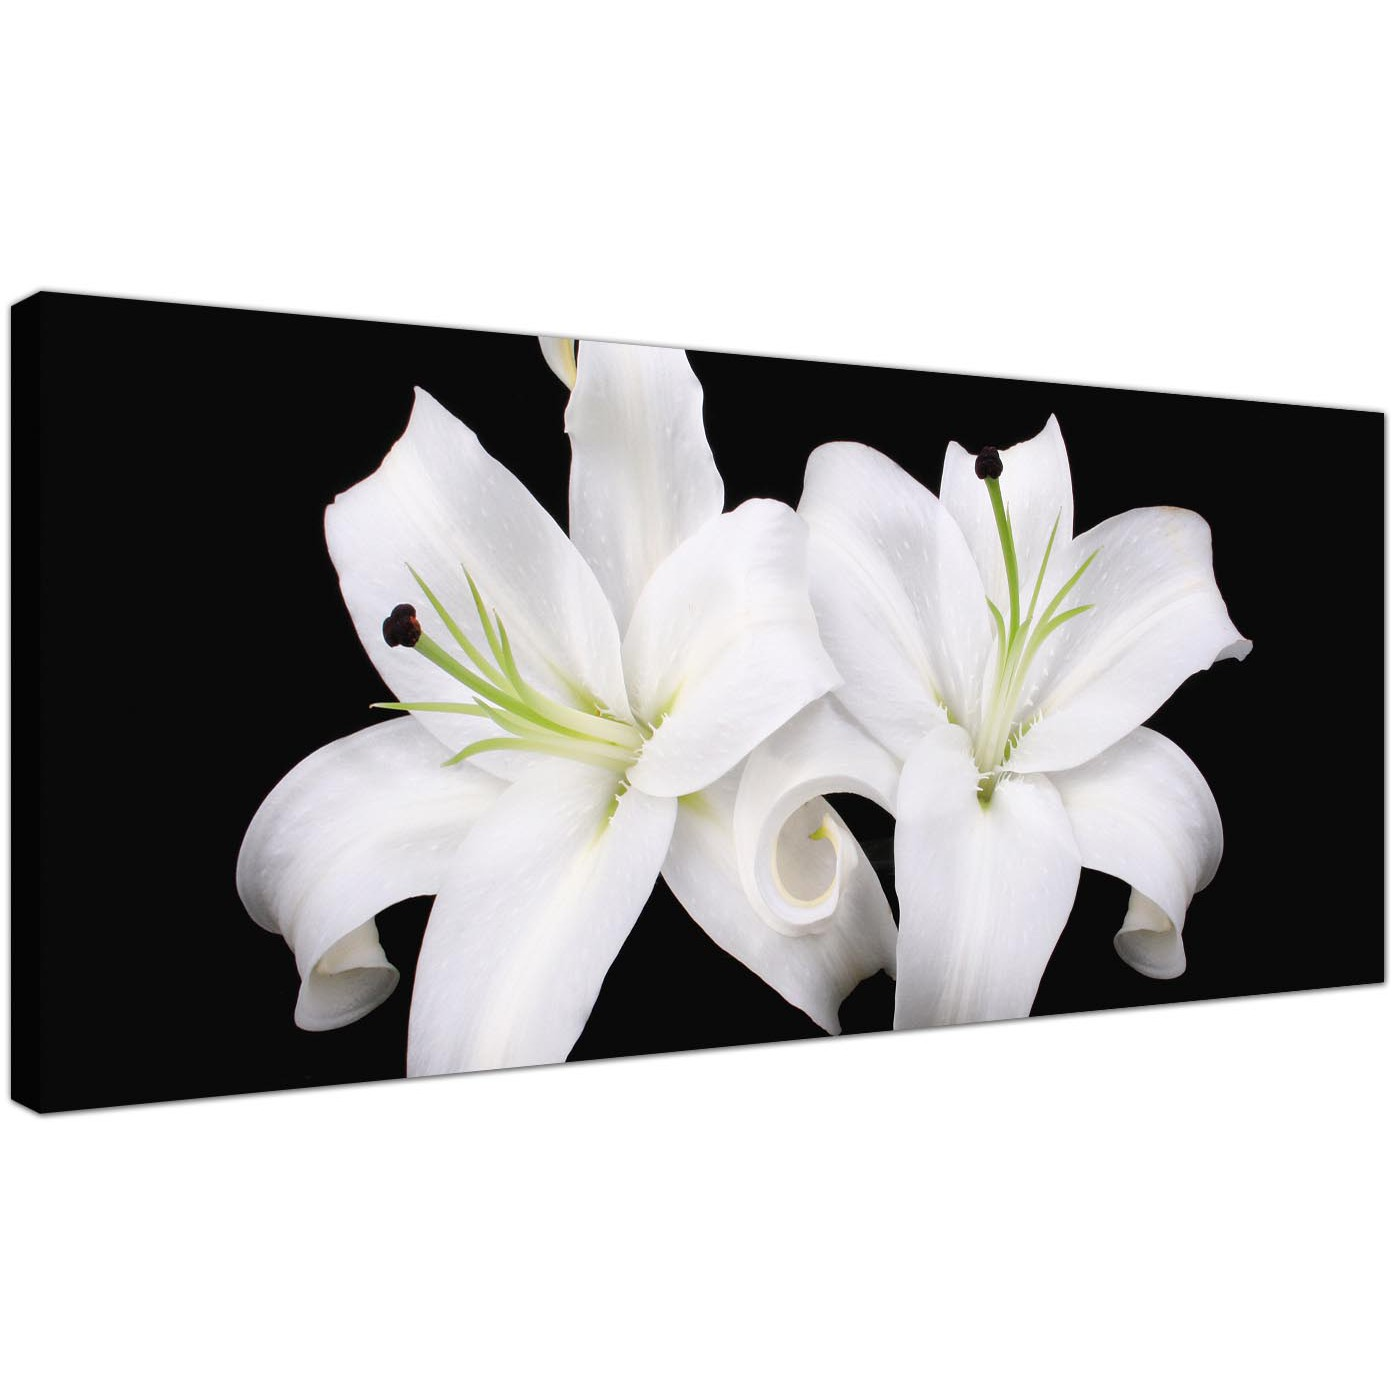 Large black and white canvas prints of lily flowers display gallery item 1 cheap canvas prints monochrome wide 1128 display gallery item 2 trendy floral canvas izmirmasajfo